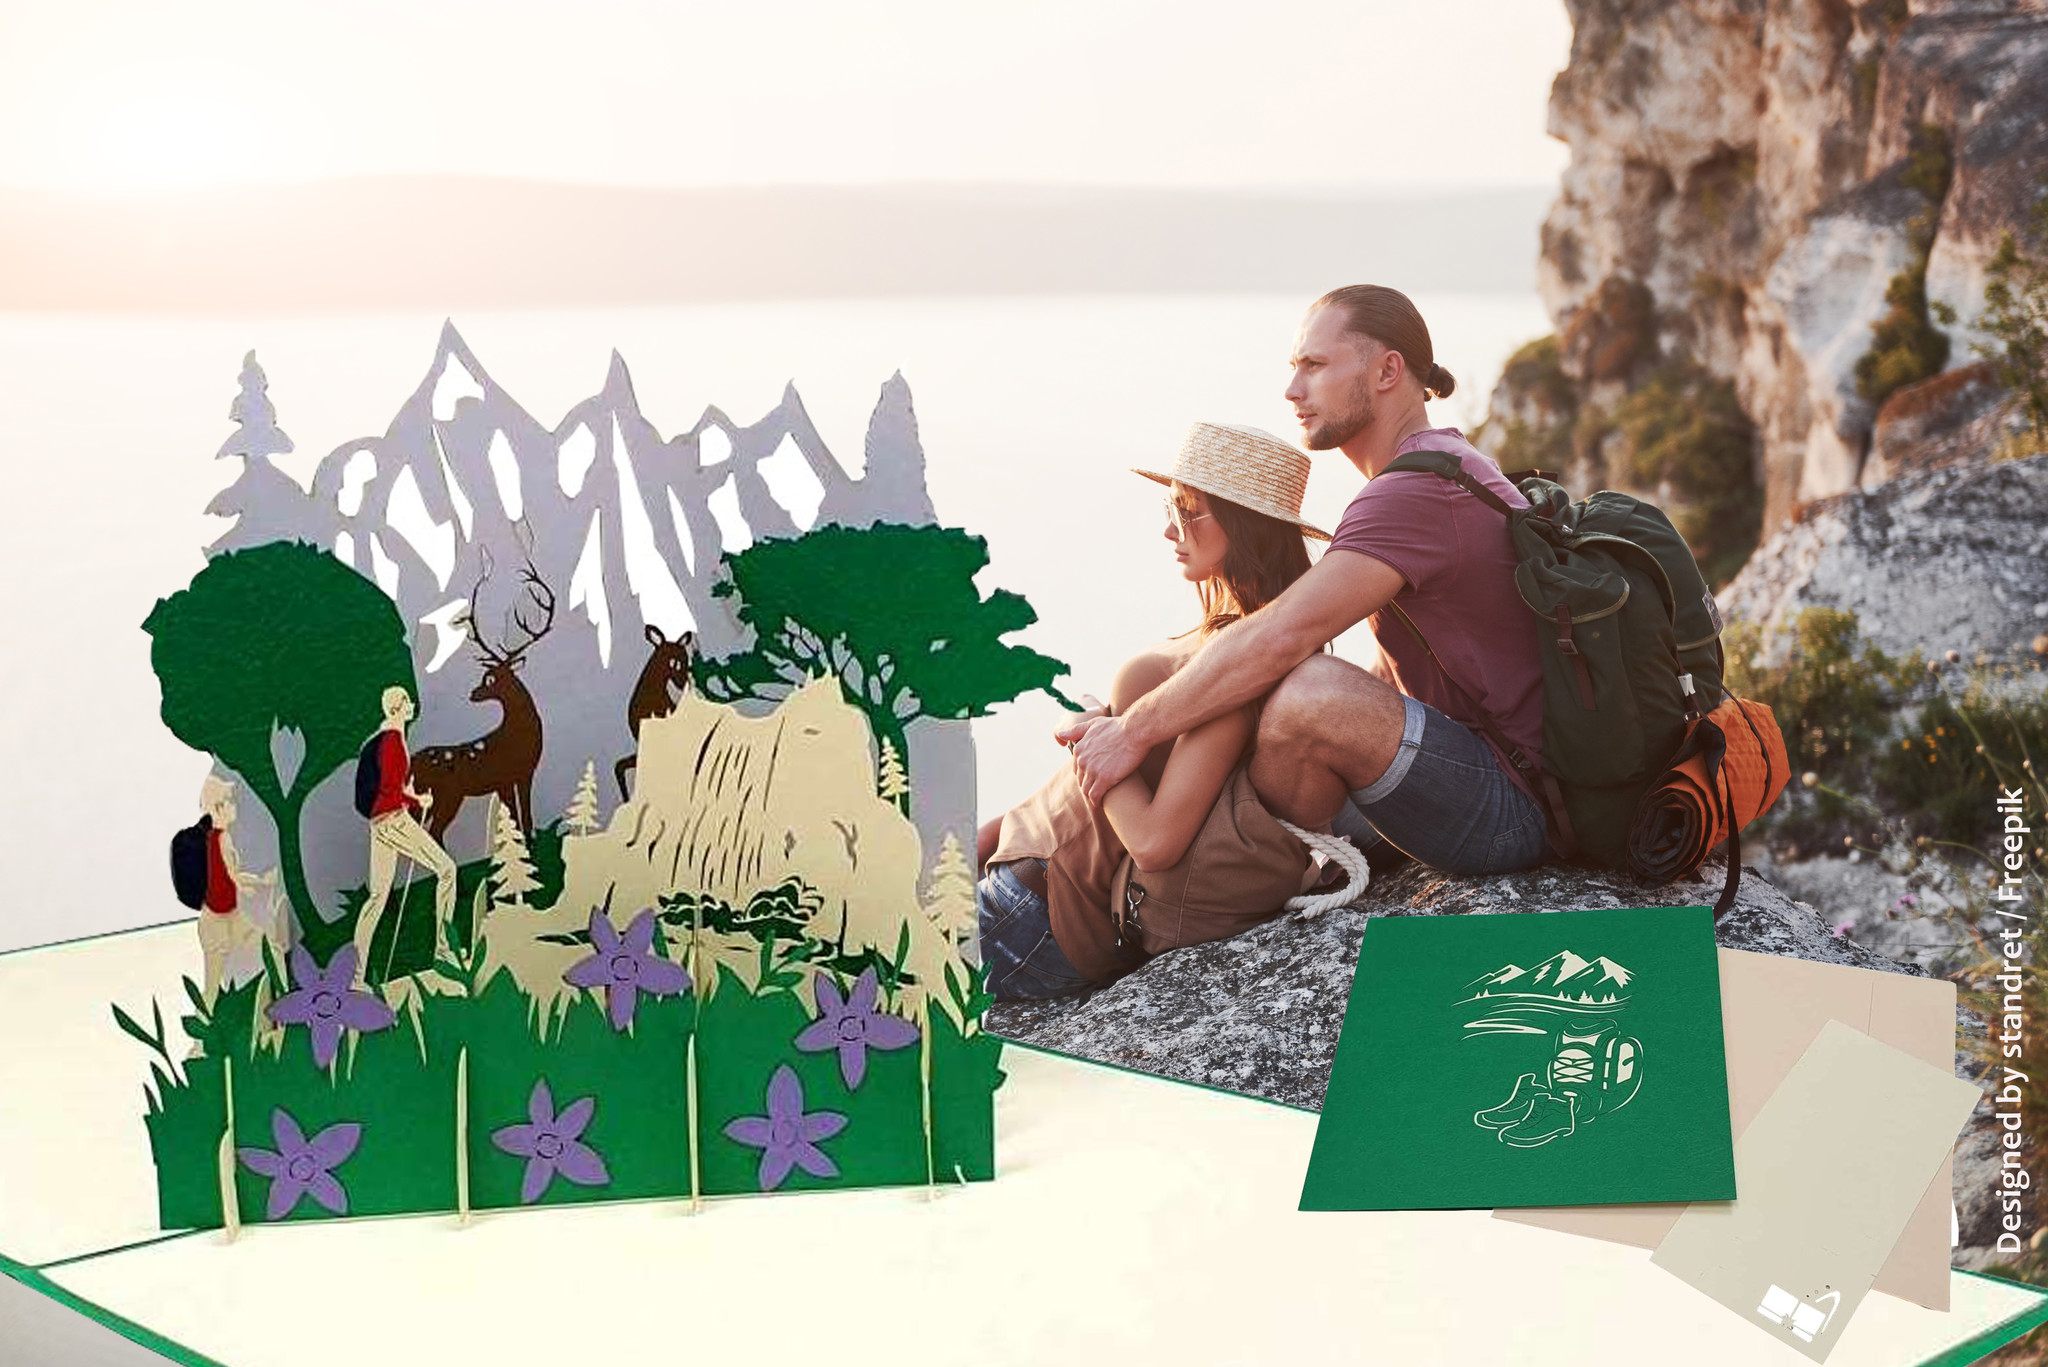 LIN17649, 3D Pop Up Greeting card, Congratulations, Travel Voucher, Hiking Voucher, Hiker and Stag, N377